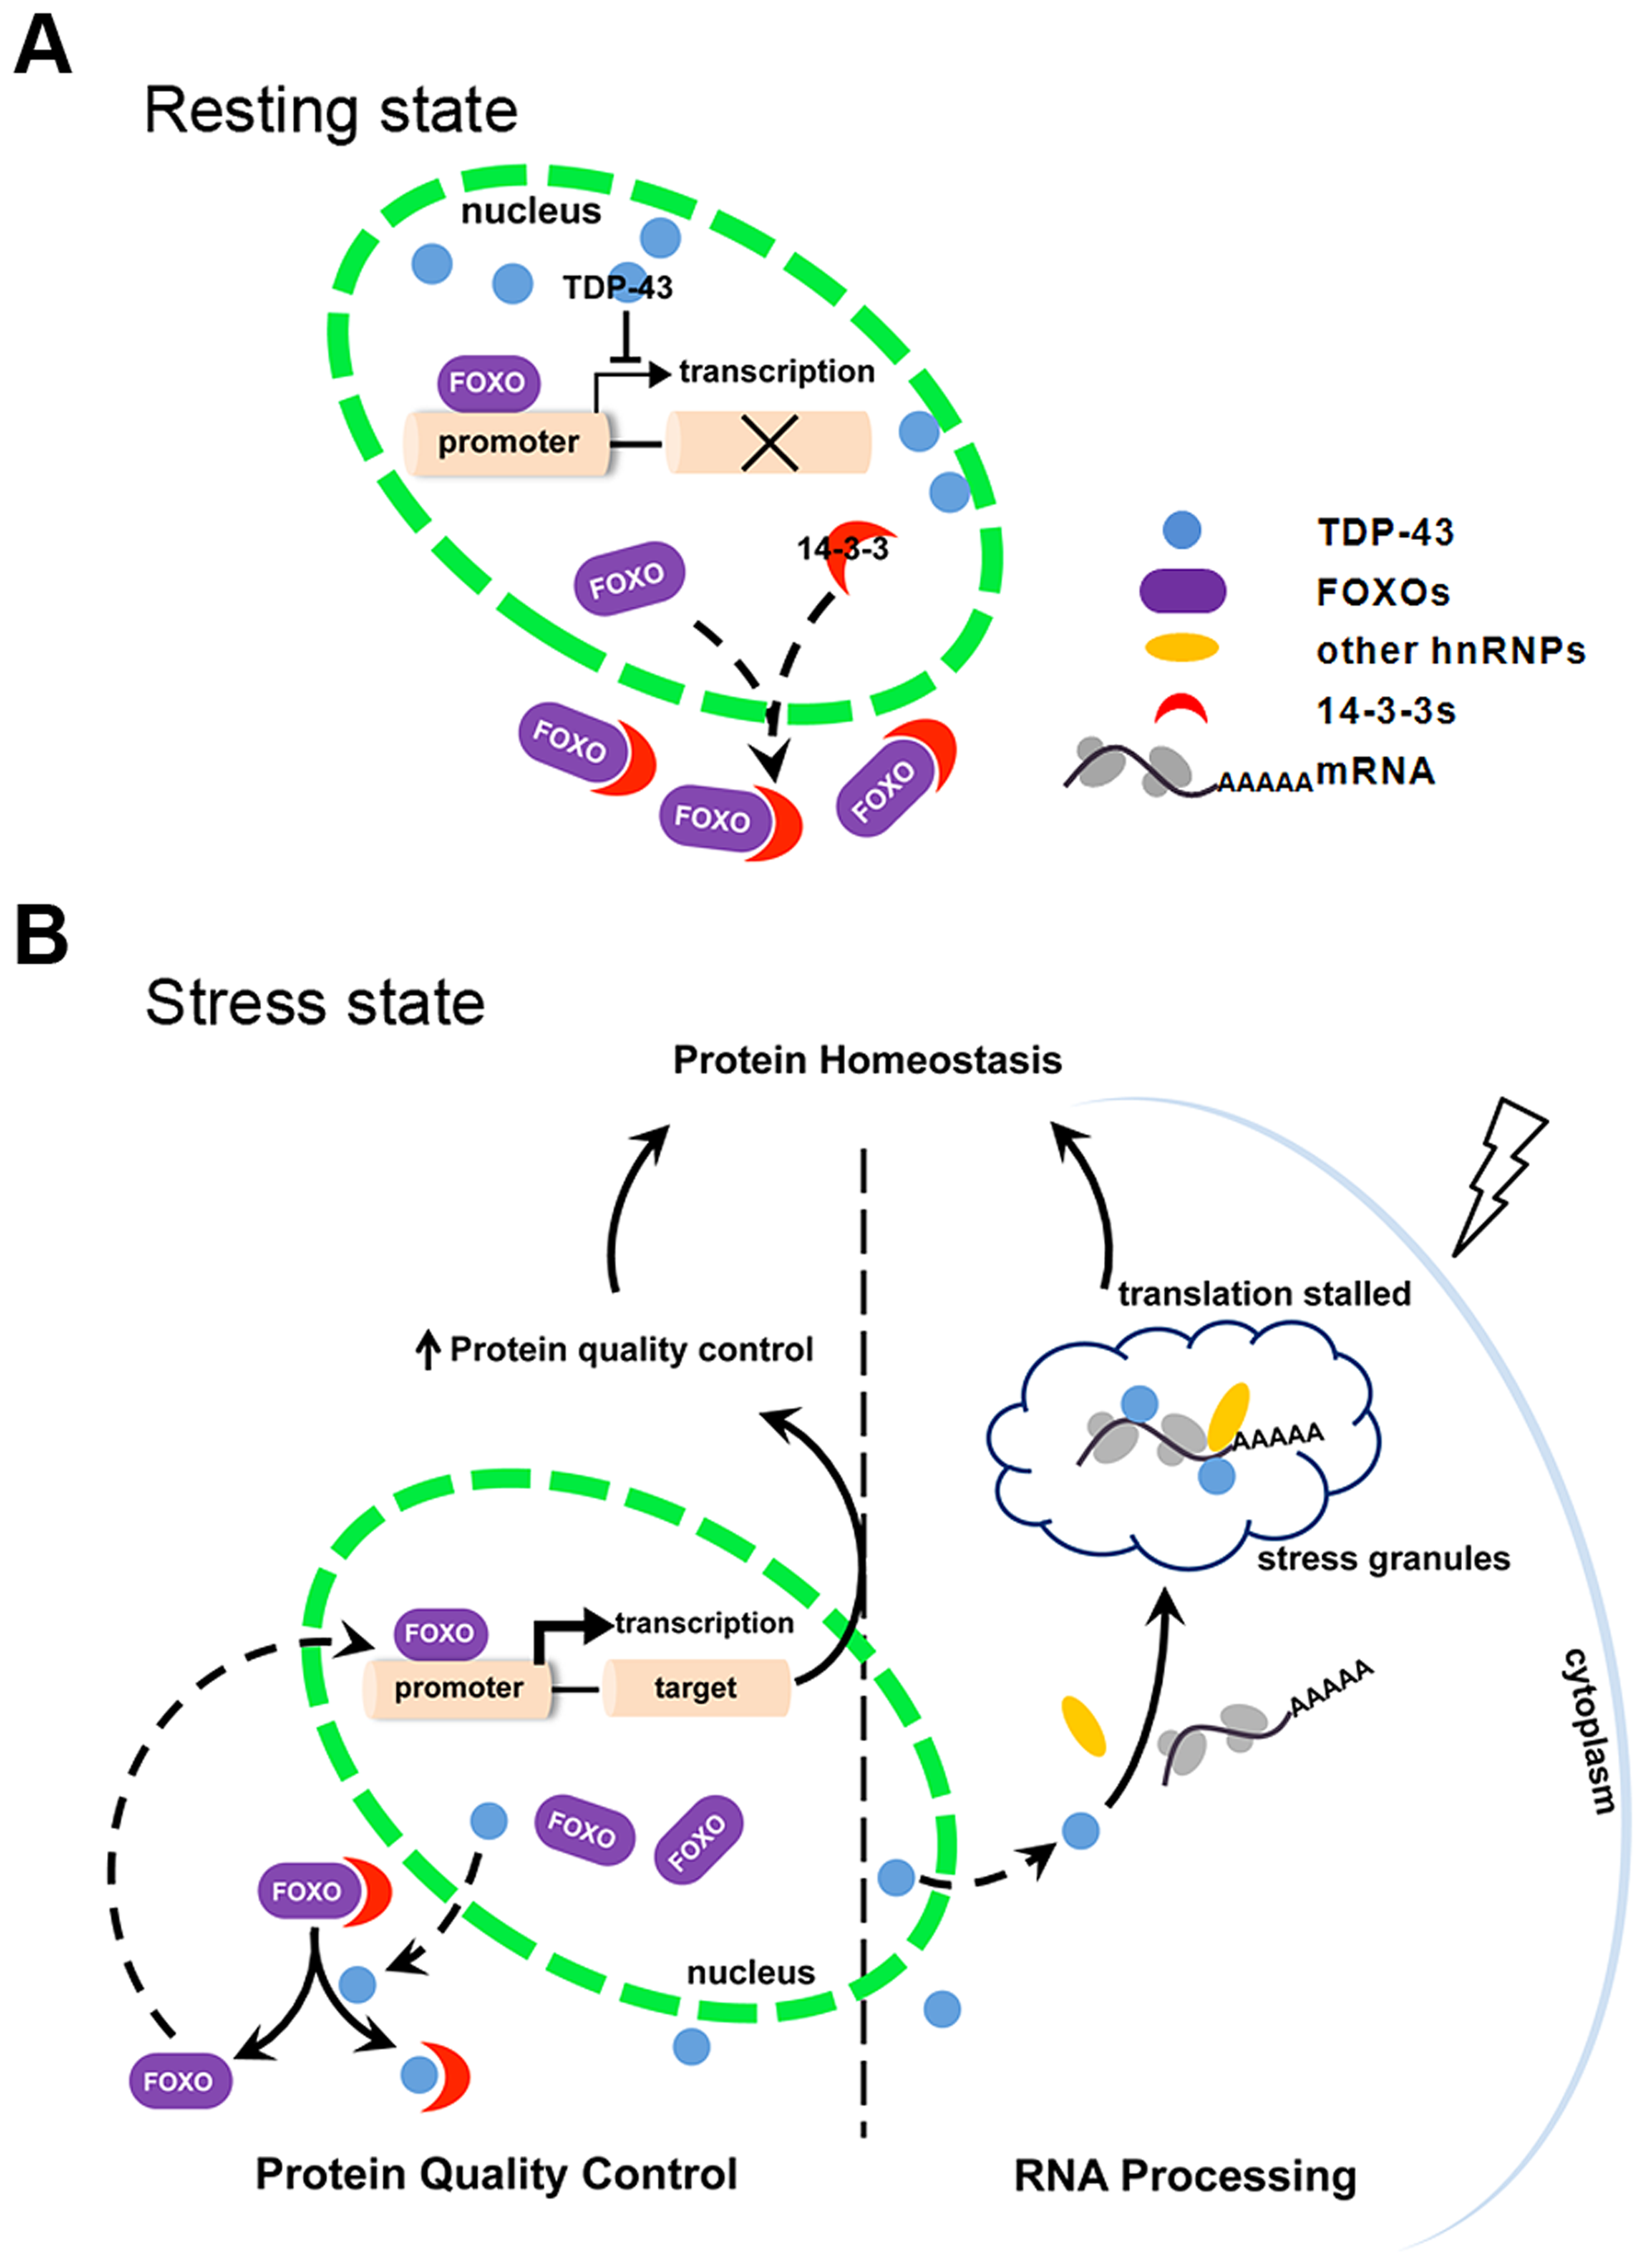 Schematic diagram summarizing the mechanism by which TDP-43 acts as a stress-response switch to regulate protein homeostasis.